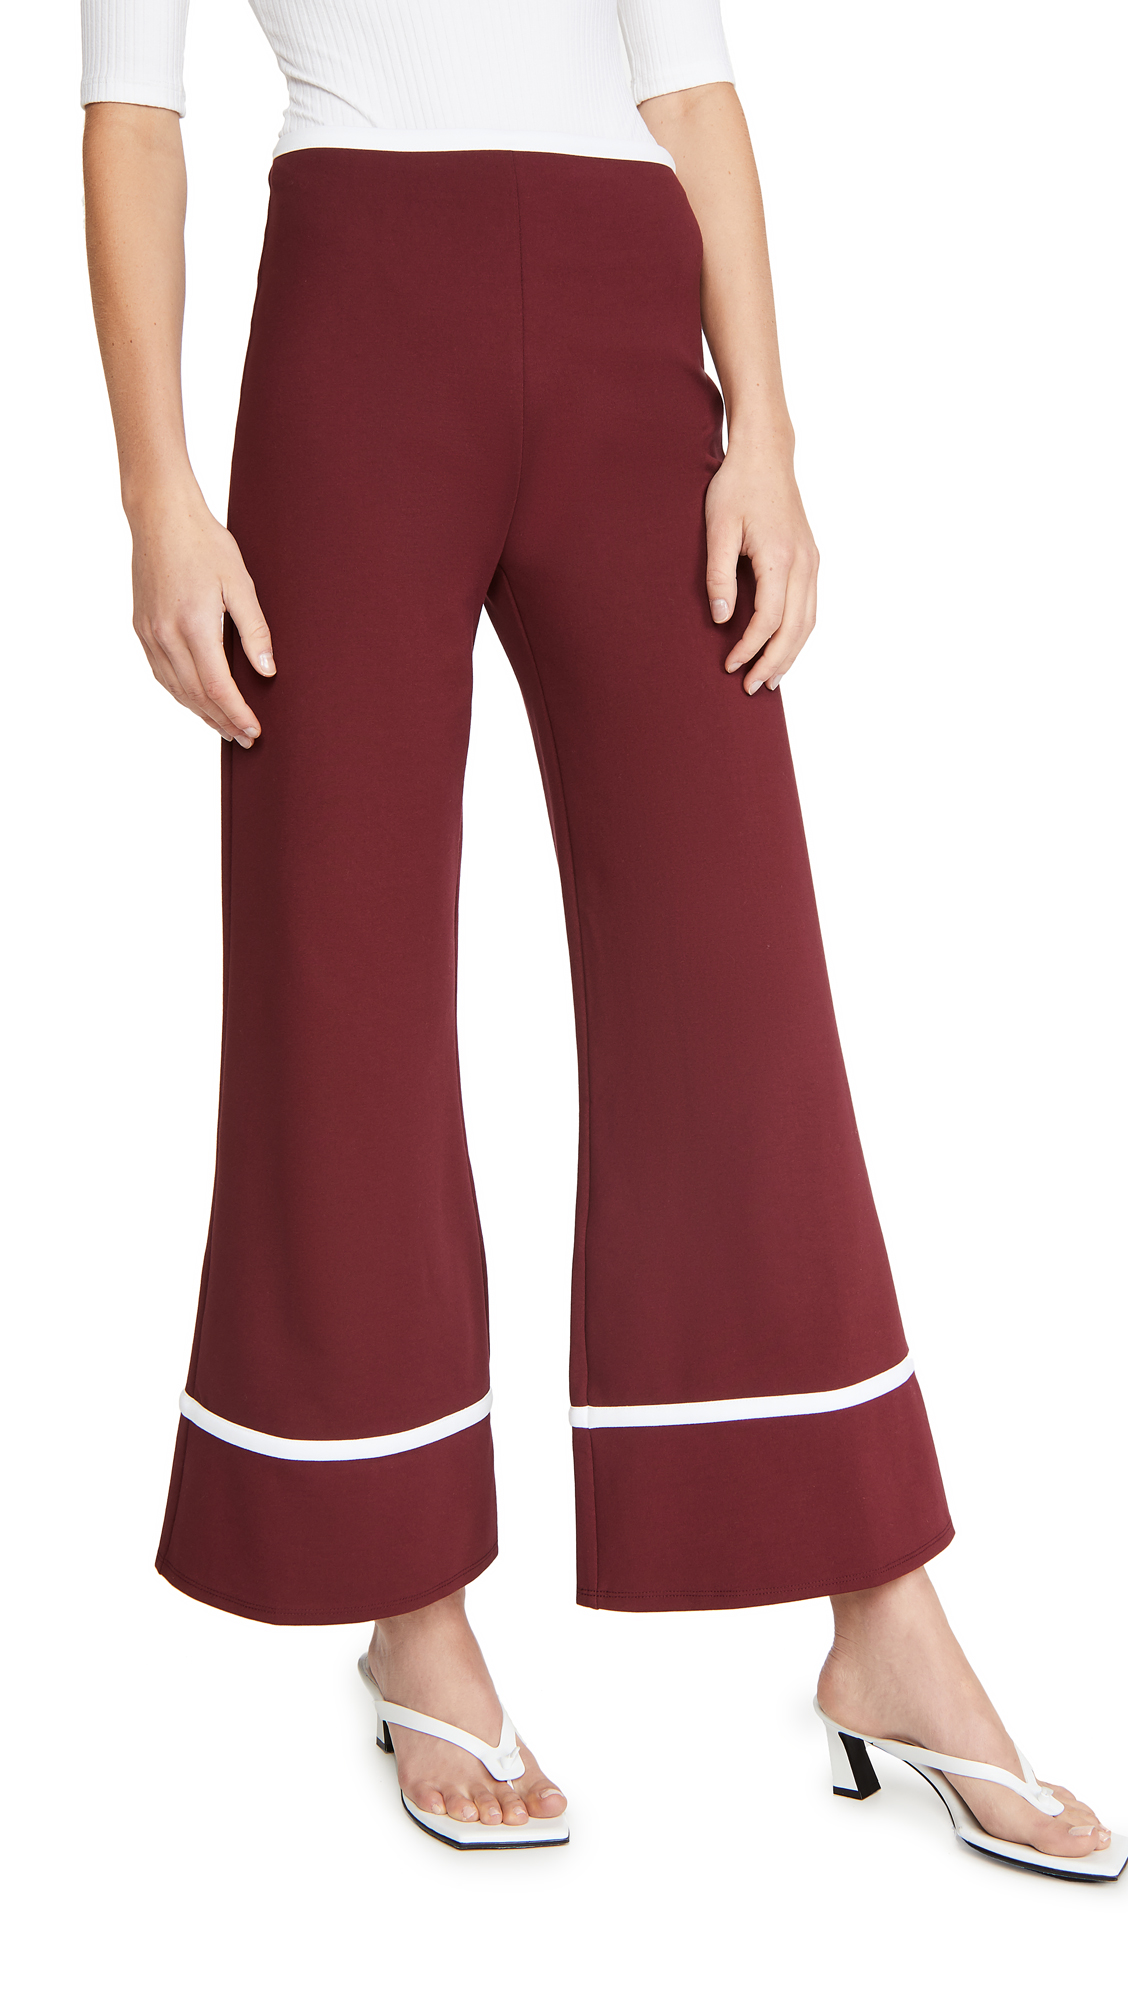 STAUD Julian Pants